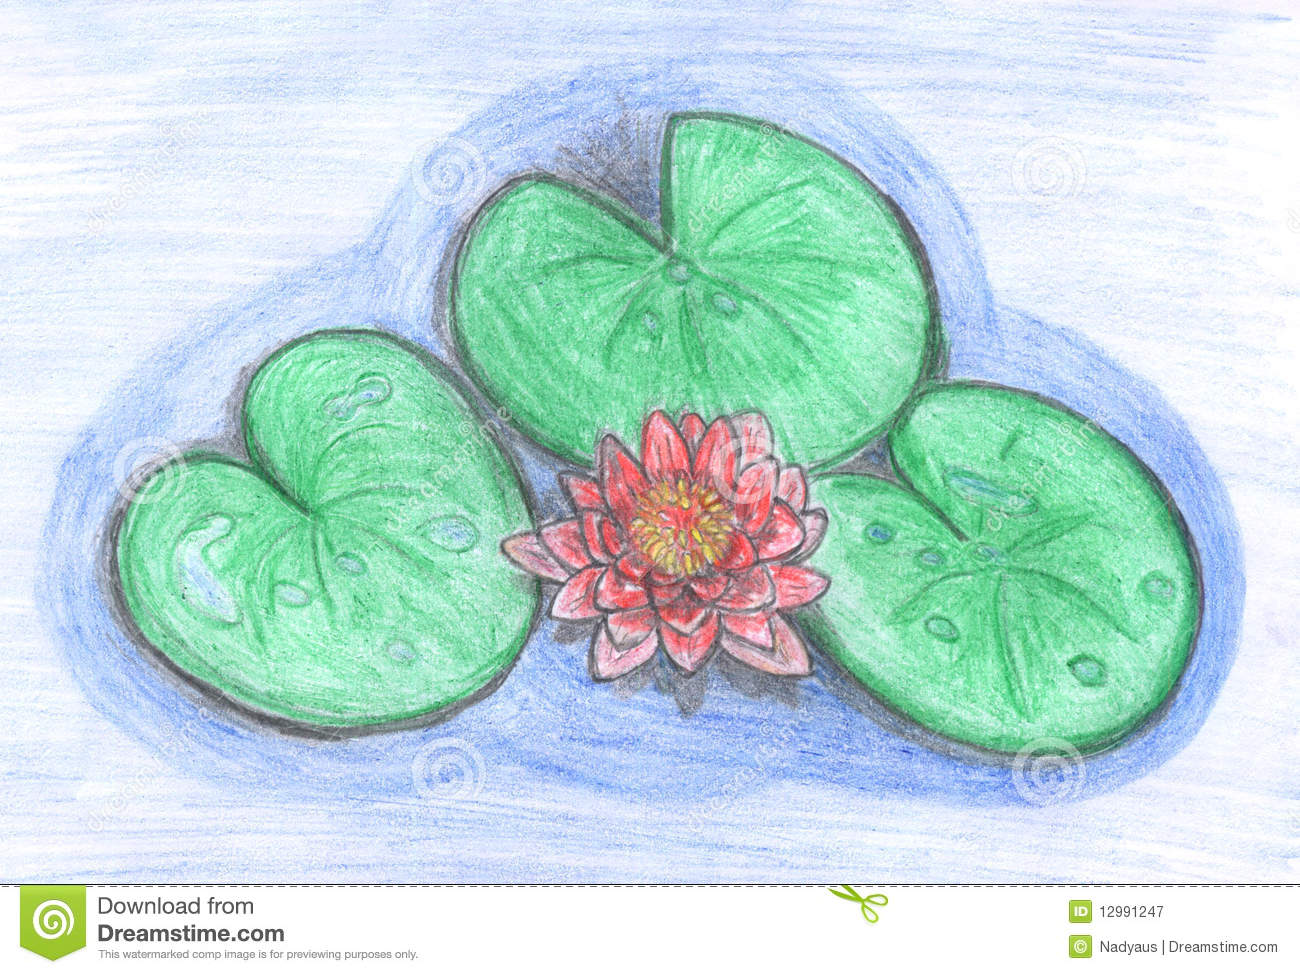 Lotus flower in water drawing stock illustration illustration of lotus flower in water drawing stock illustration illustration of pond hand 12991247 mightylinksfo